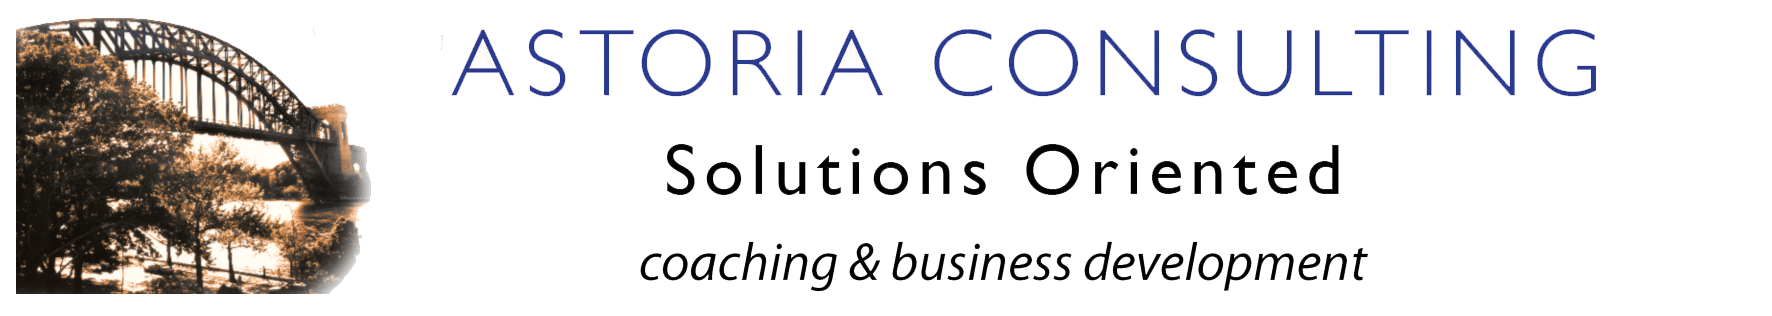 Astoria Consulting Services